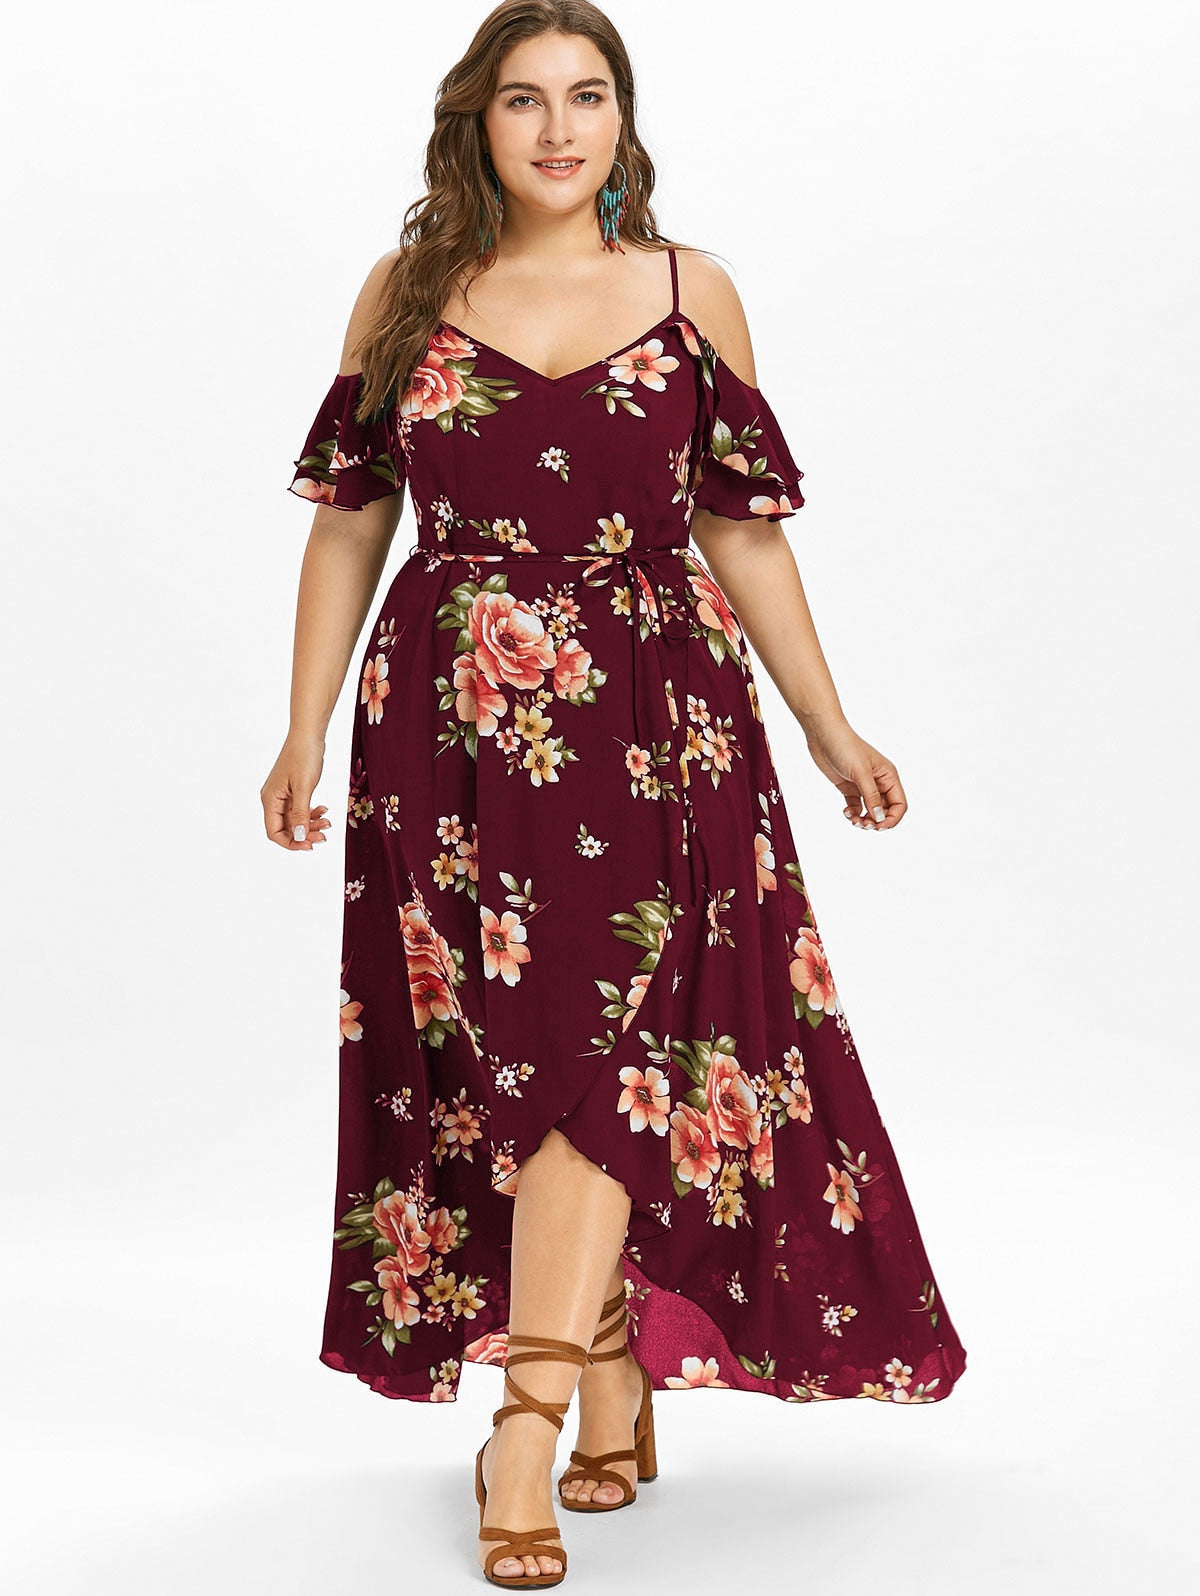 Summer Floral Plus Size Dress